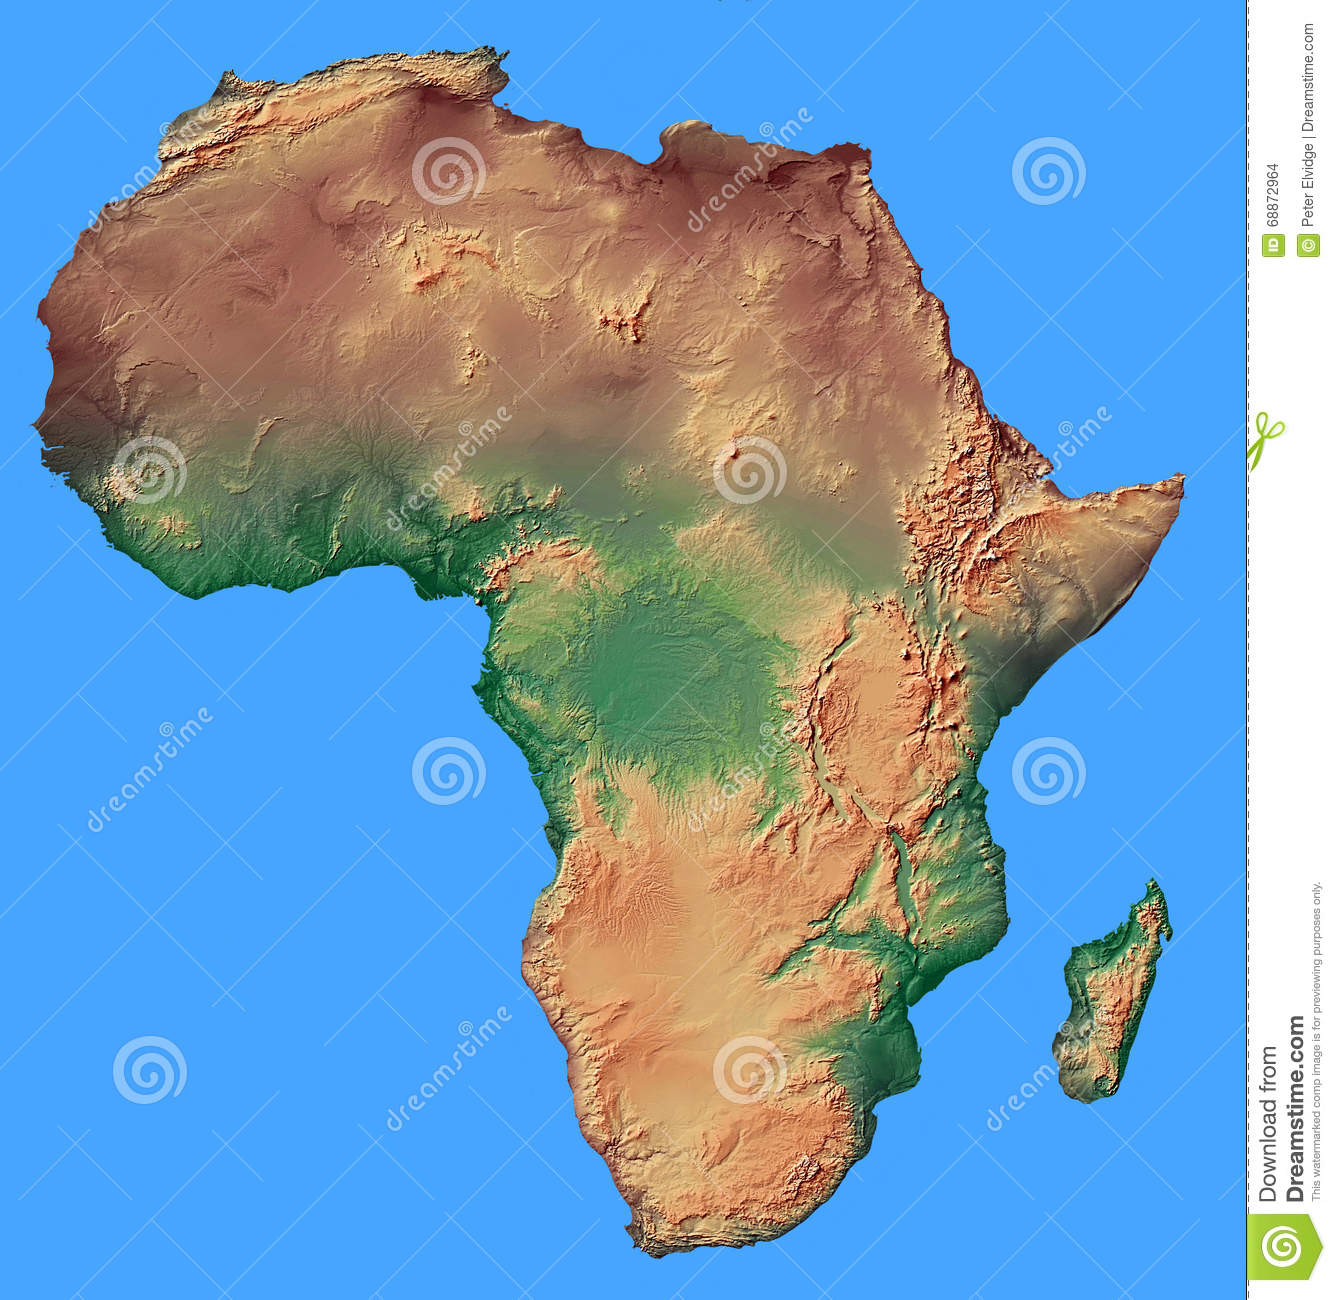 Plain Africa Map.Relief Map Of Africa Isolated Stock Photo Image Of Relief Against